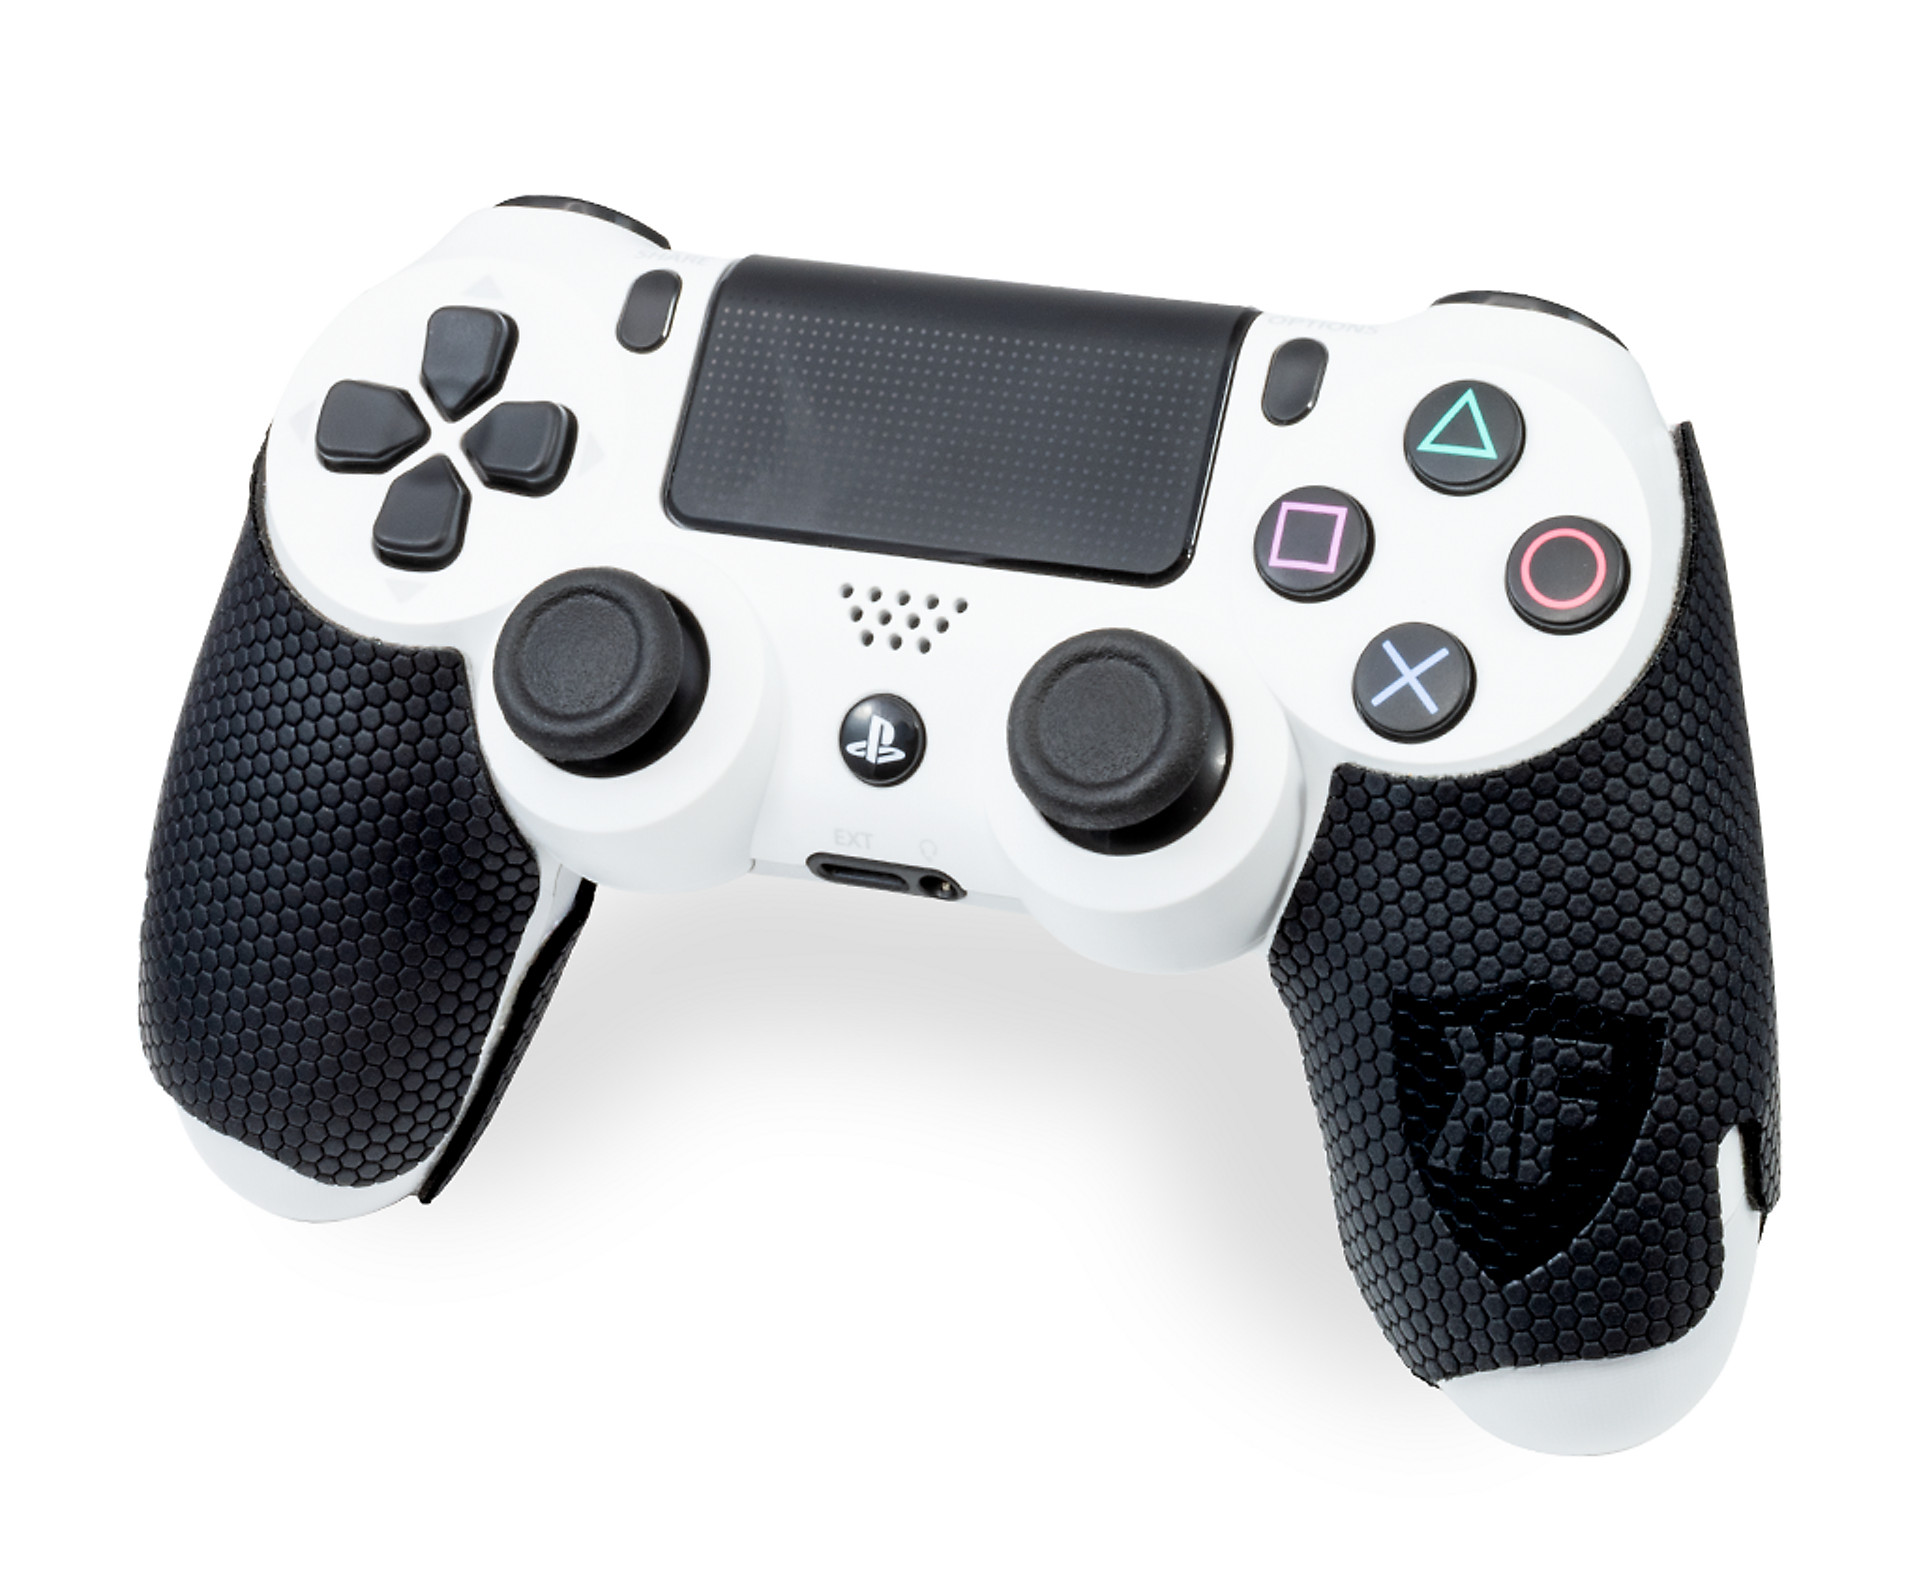 Dualshock 4 Wireless Controller Playstation Stik Ps4 New Model Glacier White Show All 3 Screenshots Close Gallery